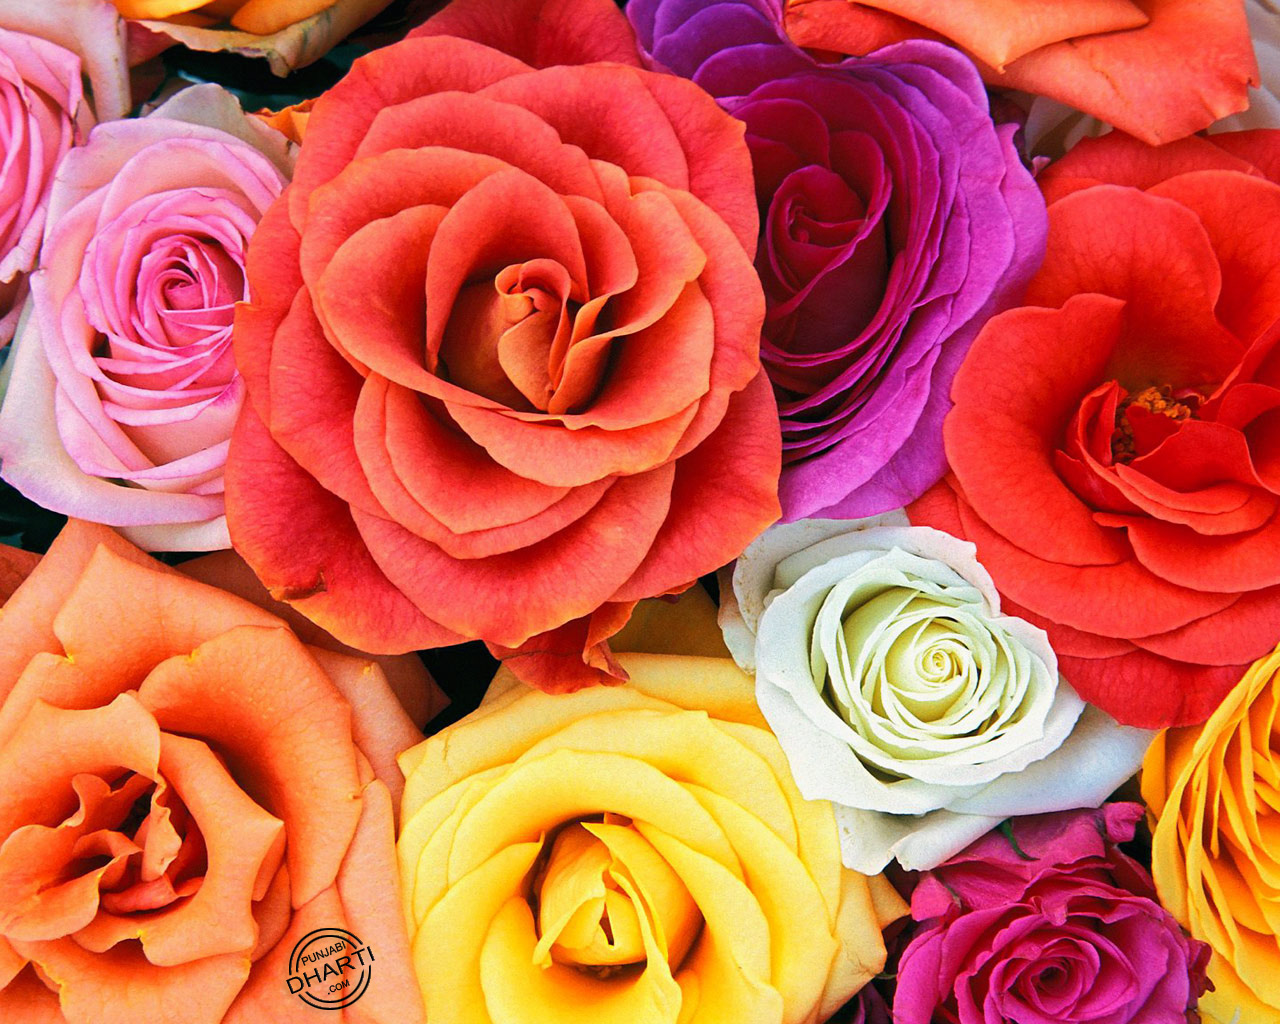 Angel Wallpapers With Quotes Flowers Wallpapers Love Blooms Roses Bunch Of Flowers Jpg